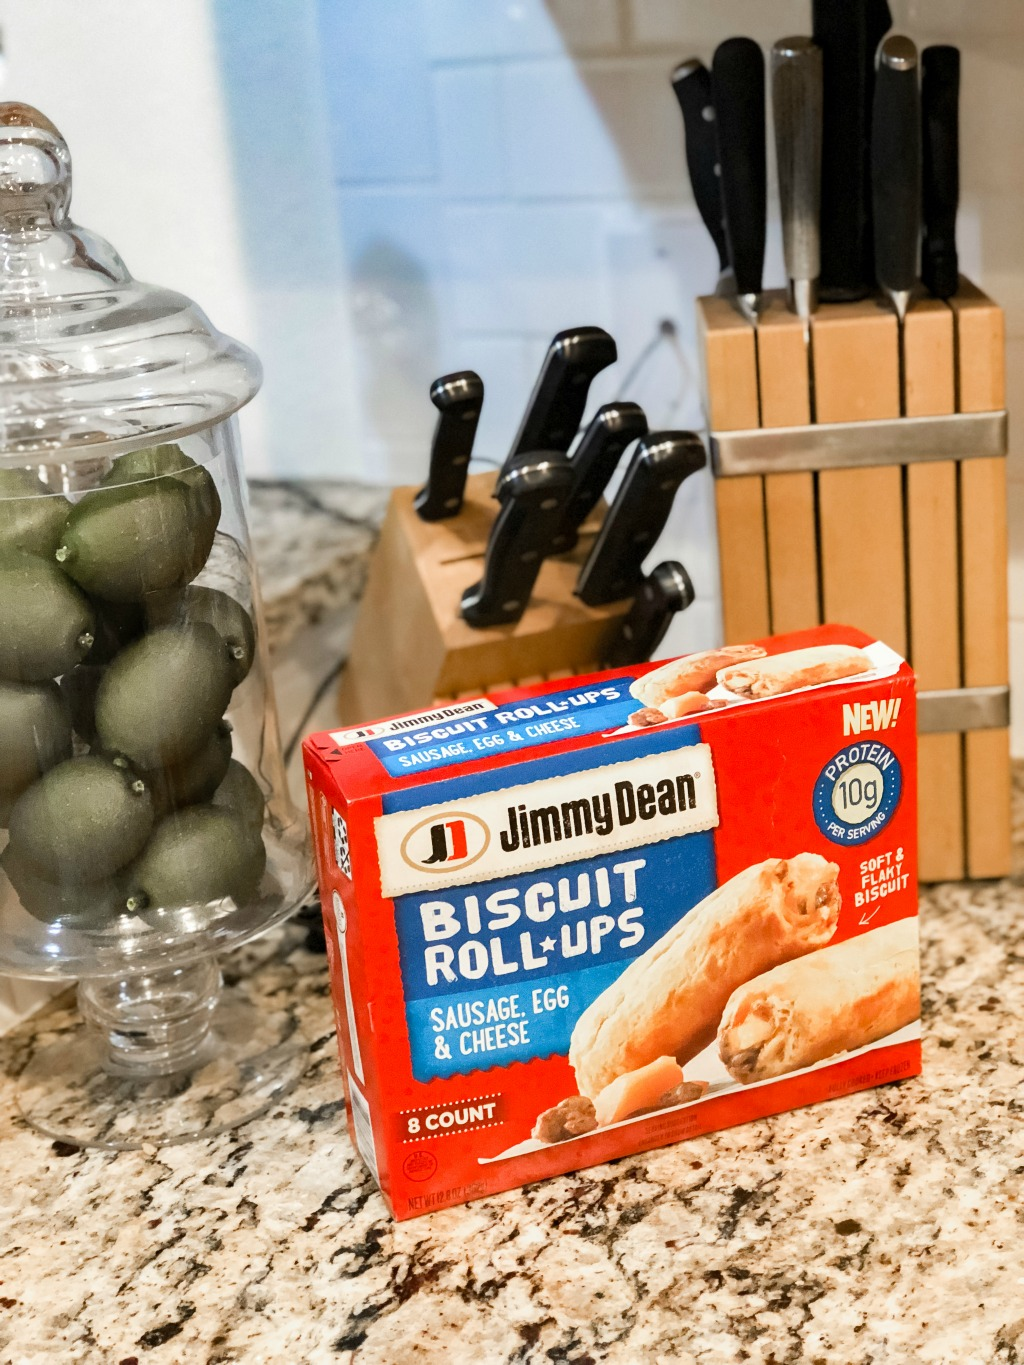 jimmy dean roll-ups on the go breakfast on brown granite counter